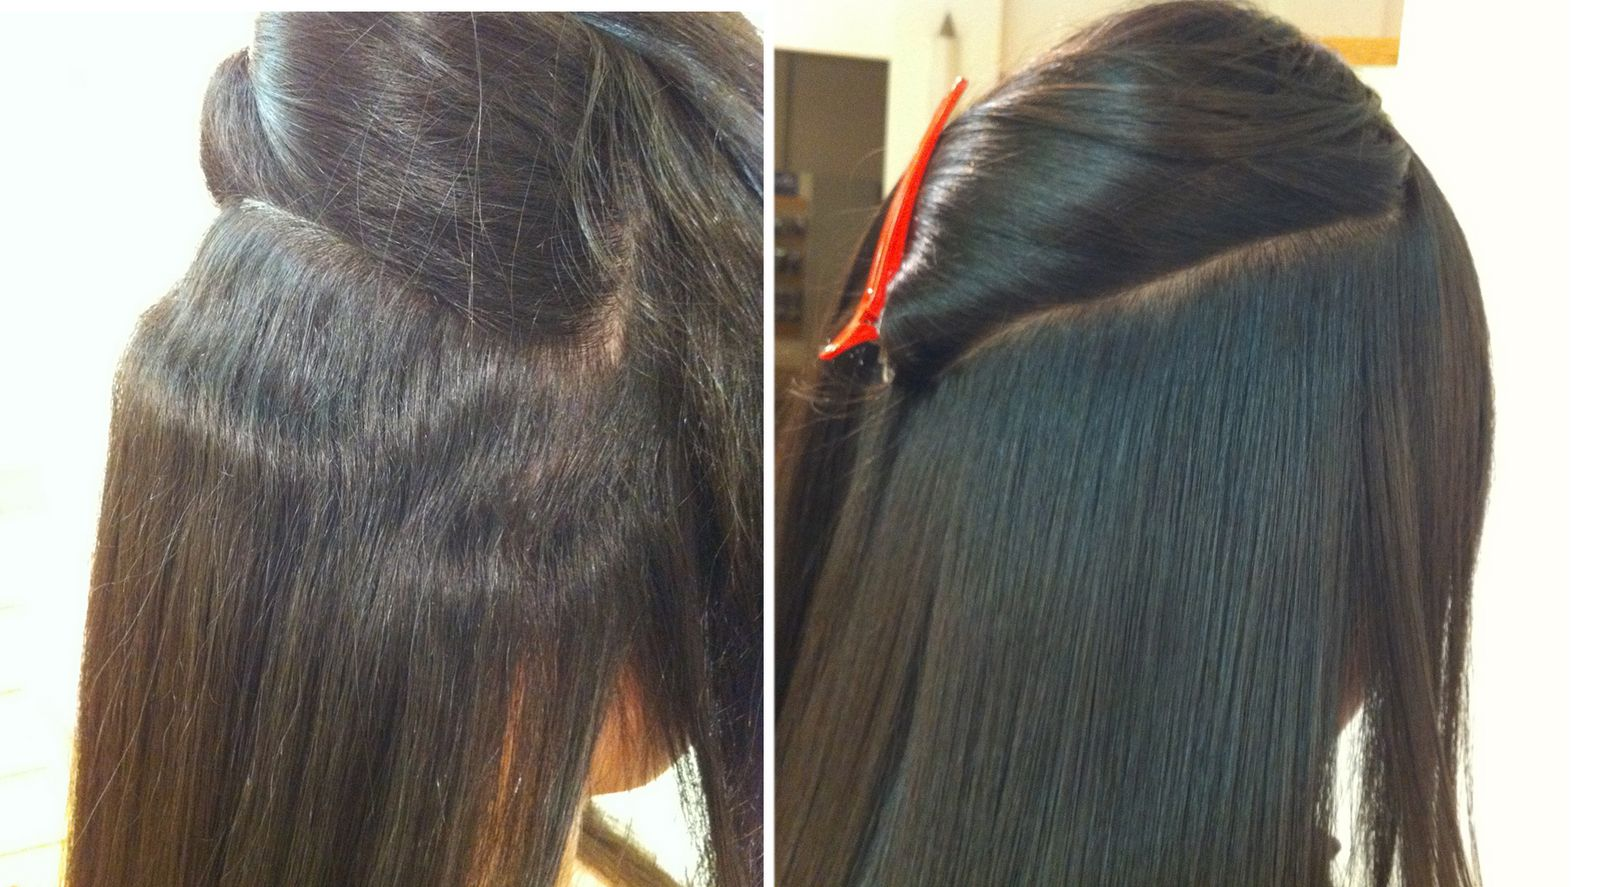 Japanese Hair Straightening: Things To Consider Before Getting It Done ...